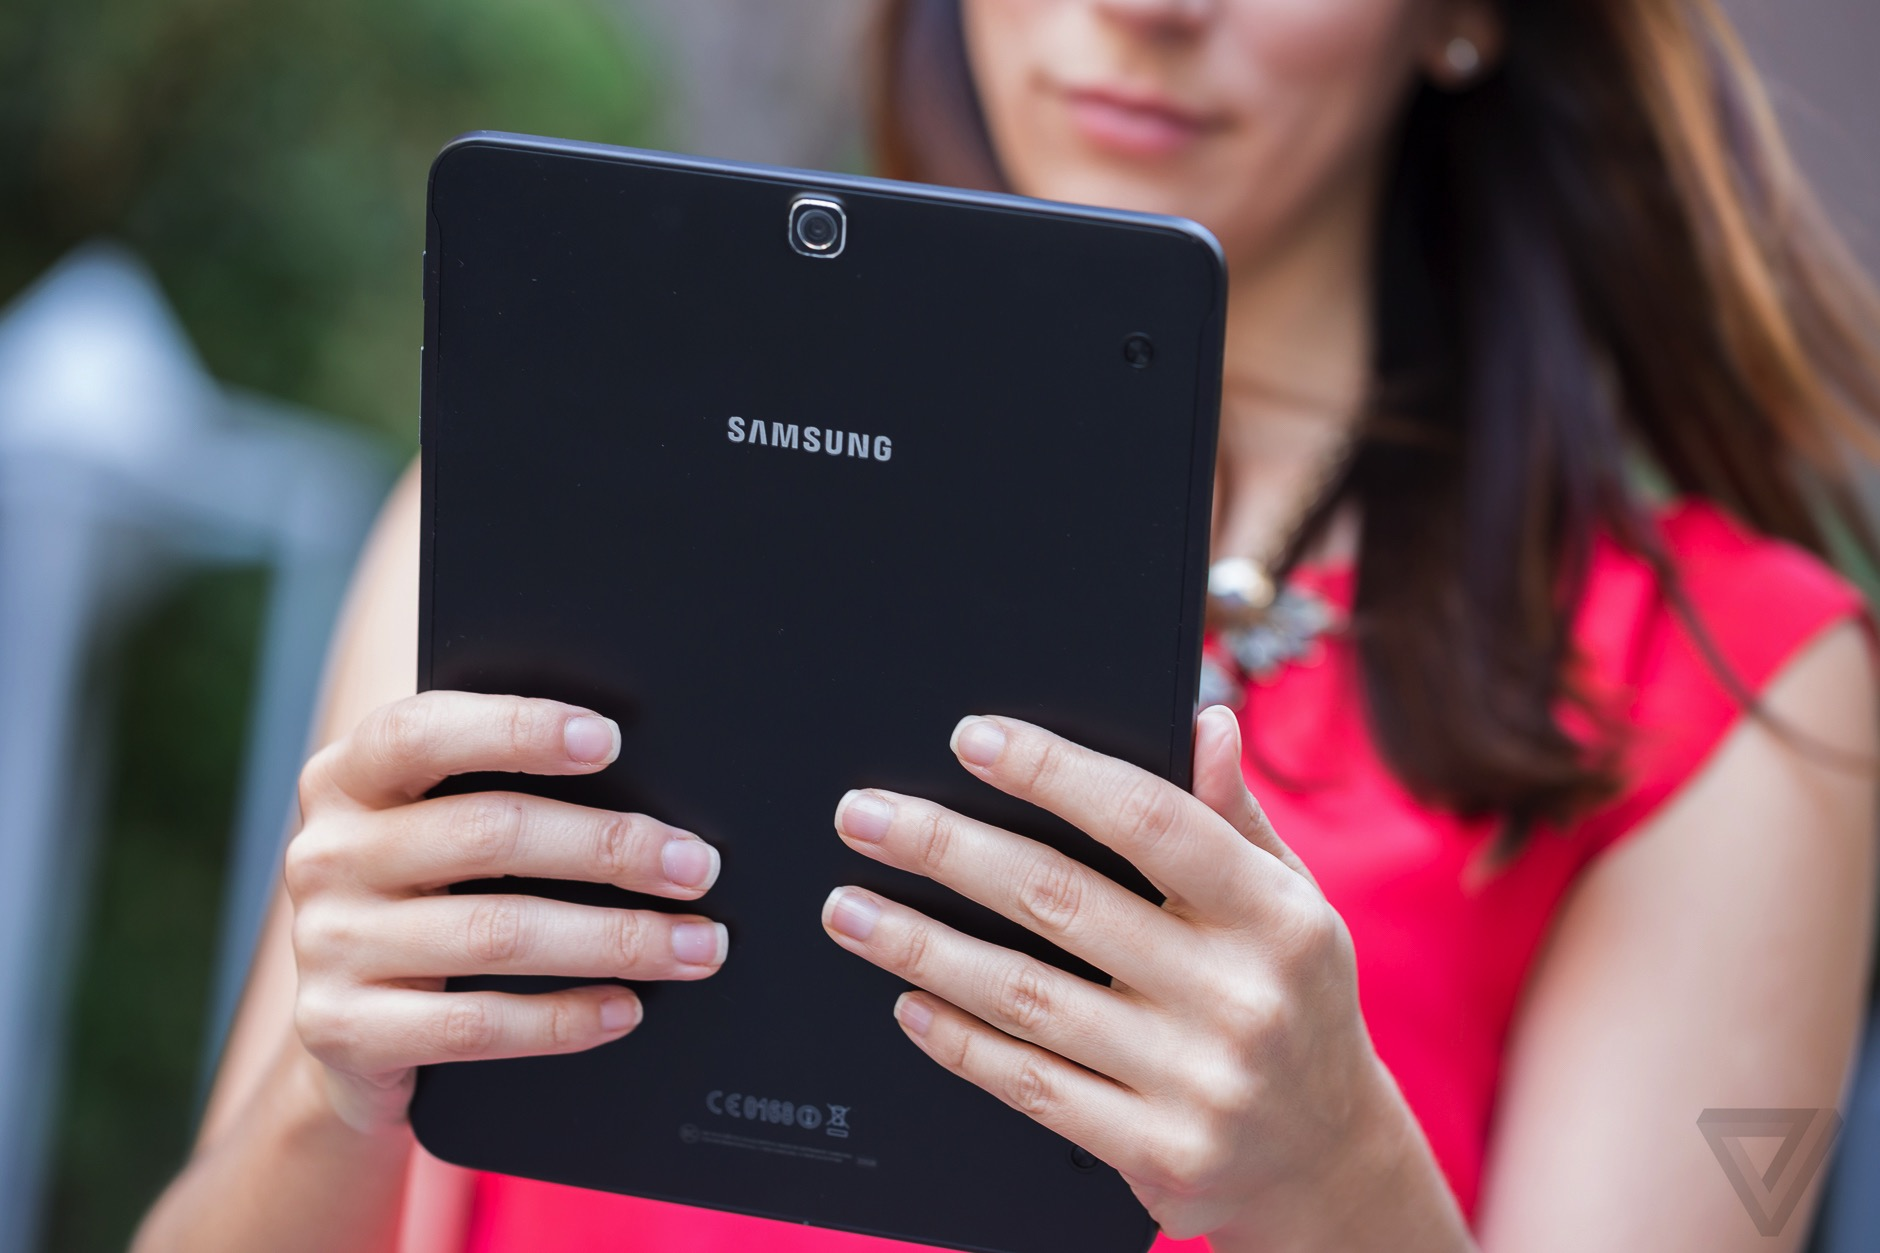 Samsung Galaxy Tab S2 review | The Verge